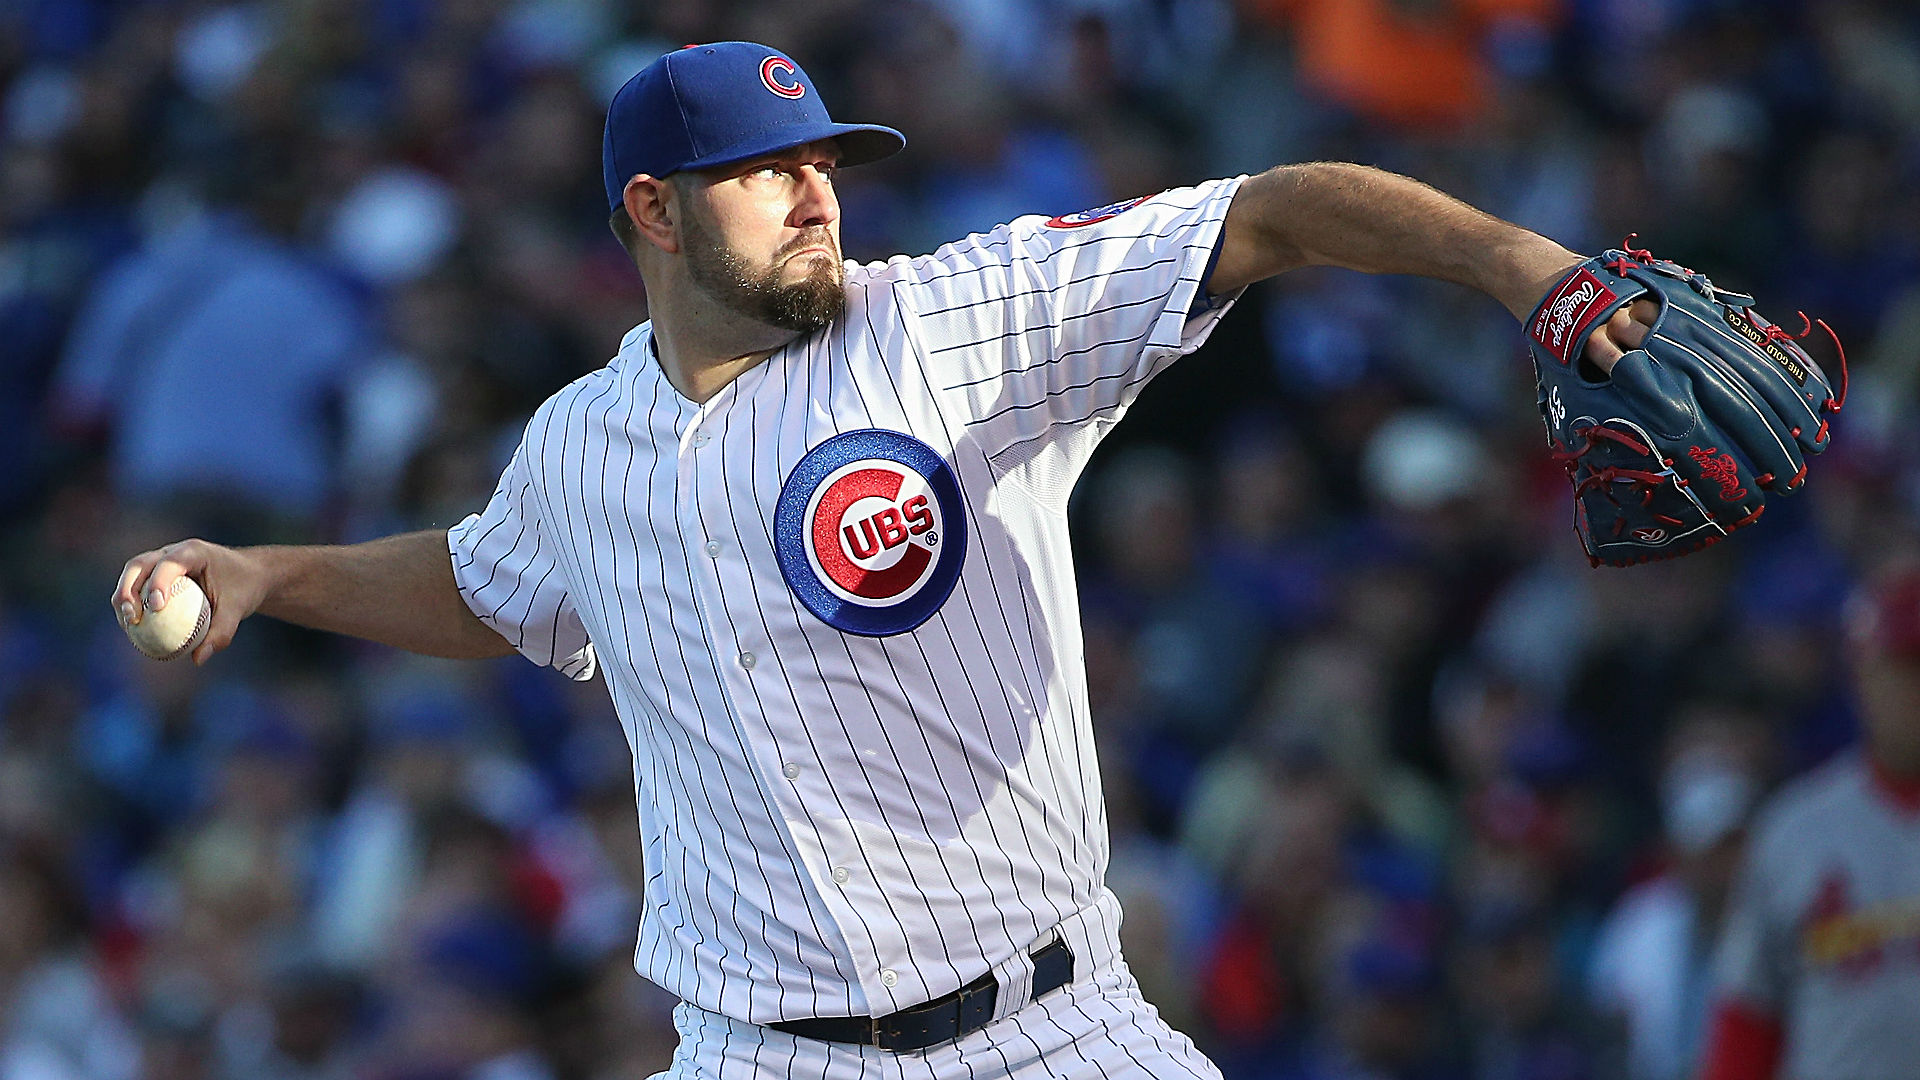 NLCS Game 4 odds, props, and pick – Hammel on bump in Chicago's must-win